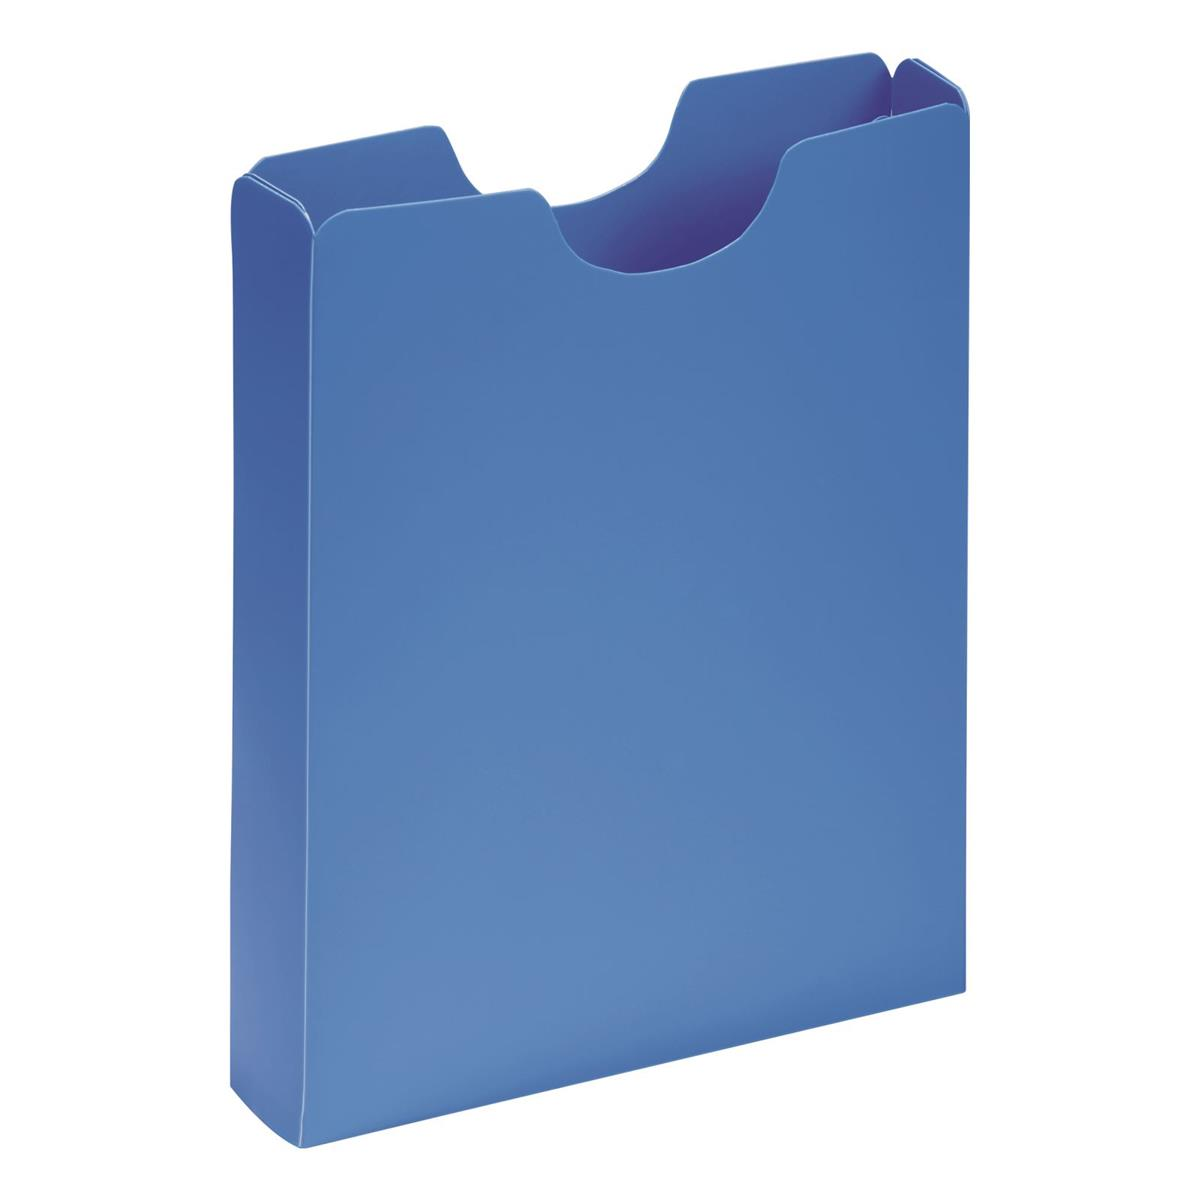 Image for Pagna Carry Case Polypropylene A4 Light Blue Ref 2100513 [Pack 10]